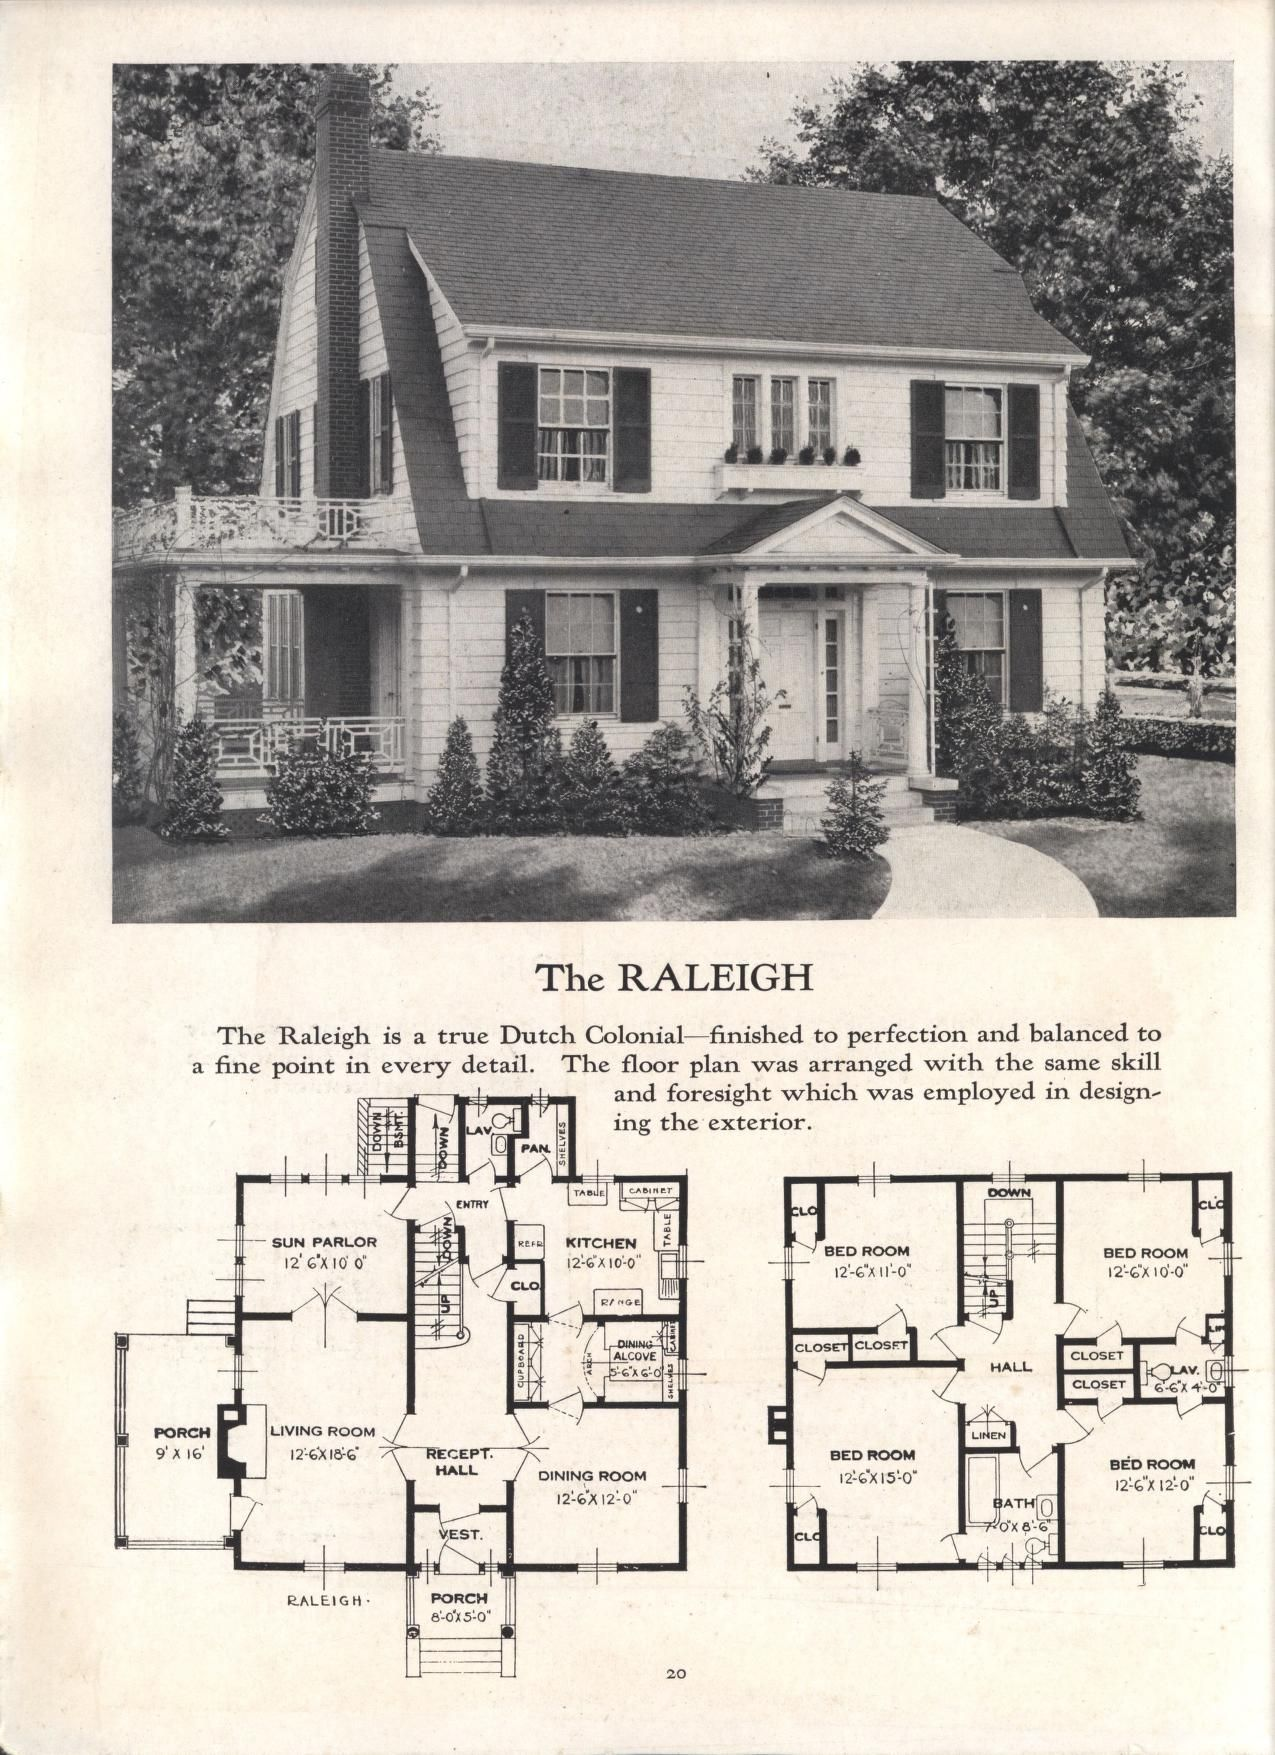 Better Homes At Lower Cost No 17 By Standard Homes Co Publication Date 1930 The Raleigh House Blueprints Vintage House Plans Architecture